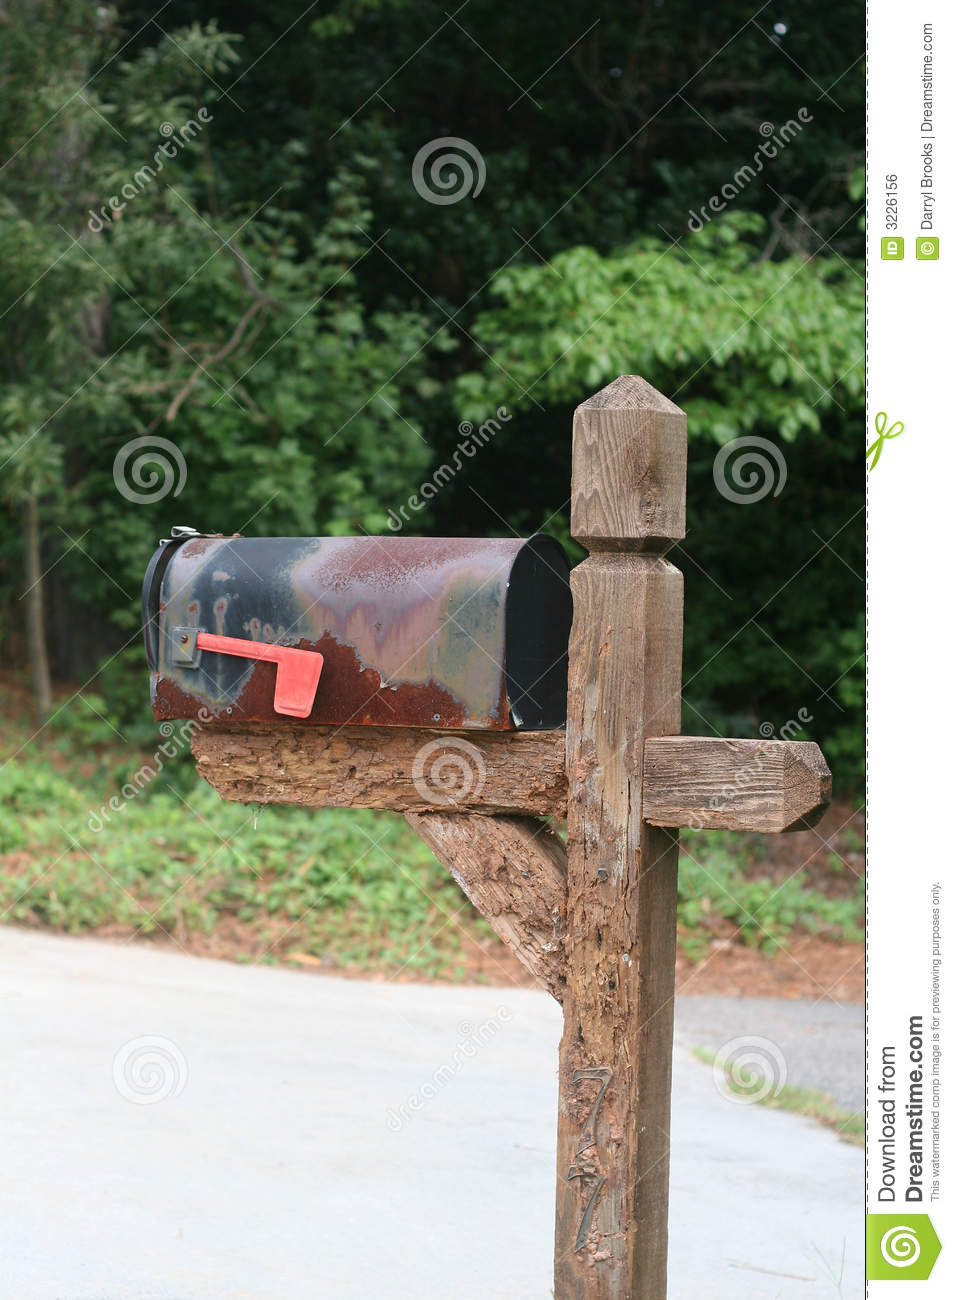 Old Mailbox Royalty Free Stock Image - Image: 3226156